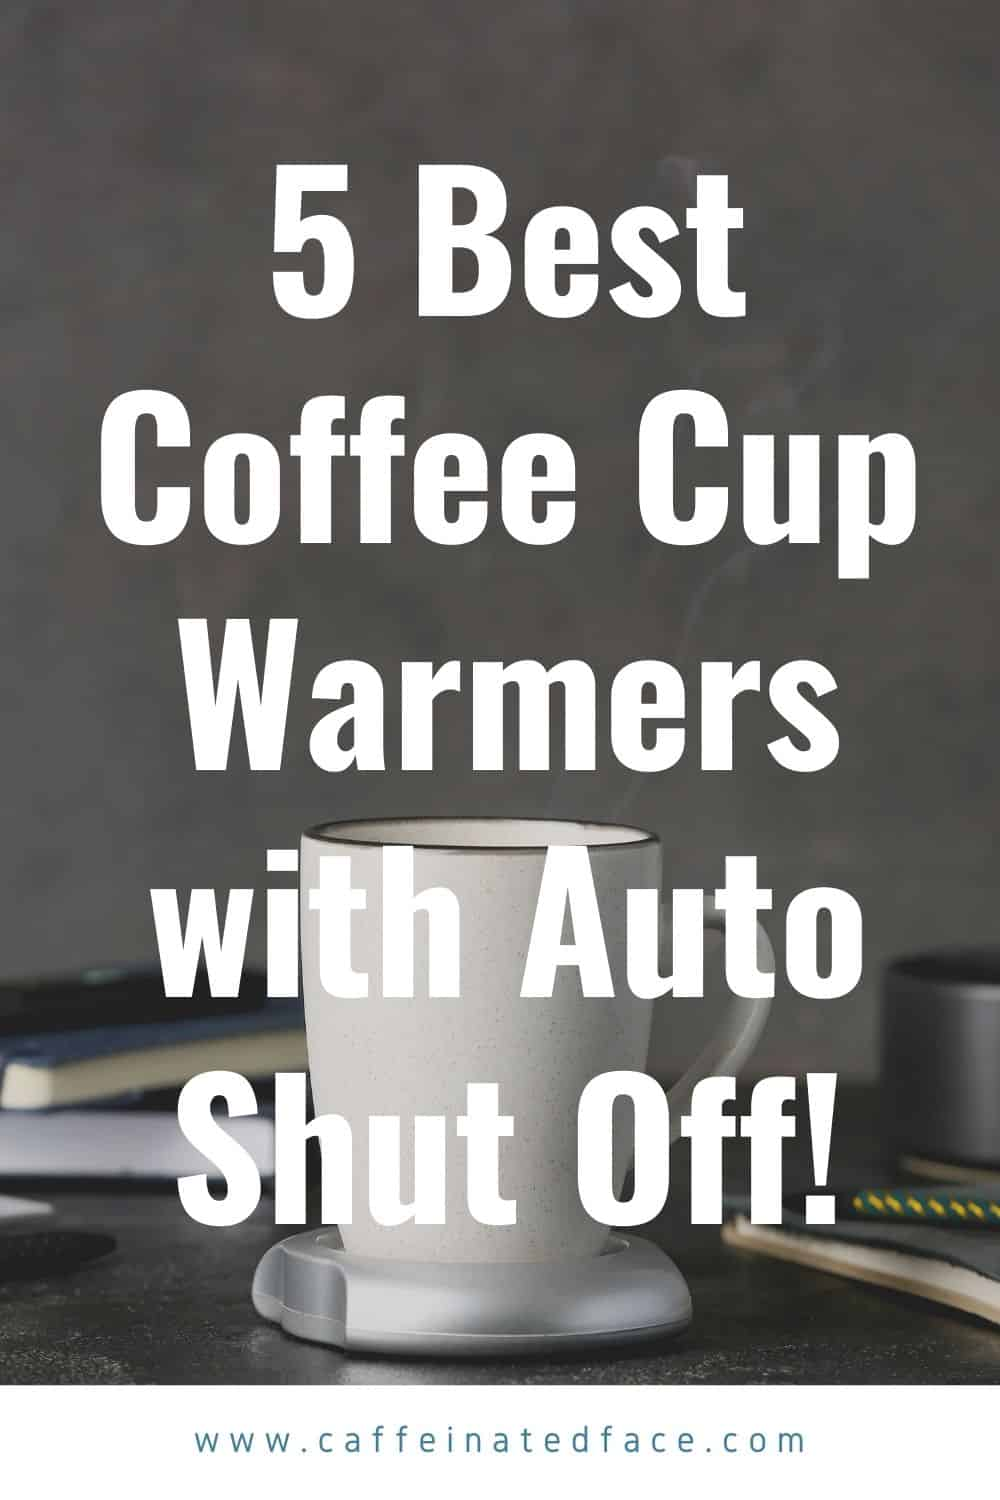 best coffee cup warmer with auto shut off (1)